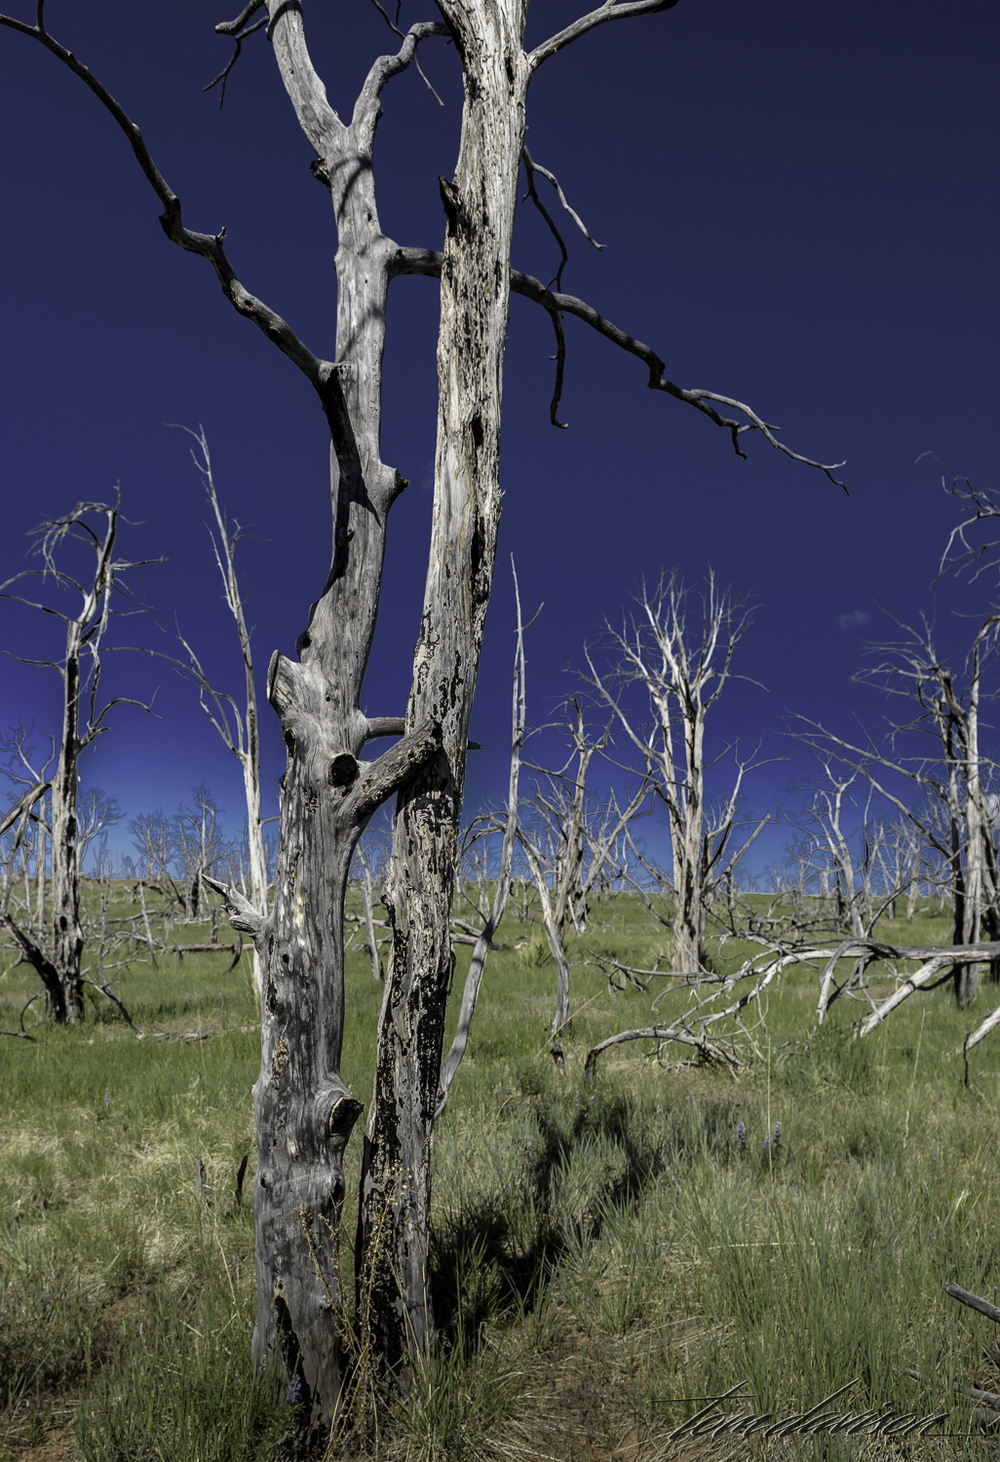 There have been many fires on the mesa in recent decades.  The park identifies the fire damaged areas by name and provides the year that the fire took place.  The trees still standing give the area an eerie feeling.  Tom called these the 'hugging trees'.  I can see them as the 'dancing trees'.